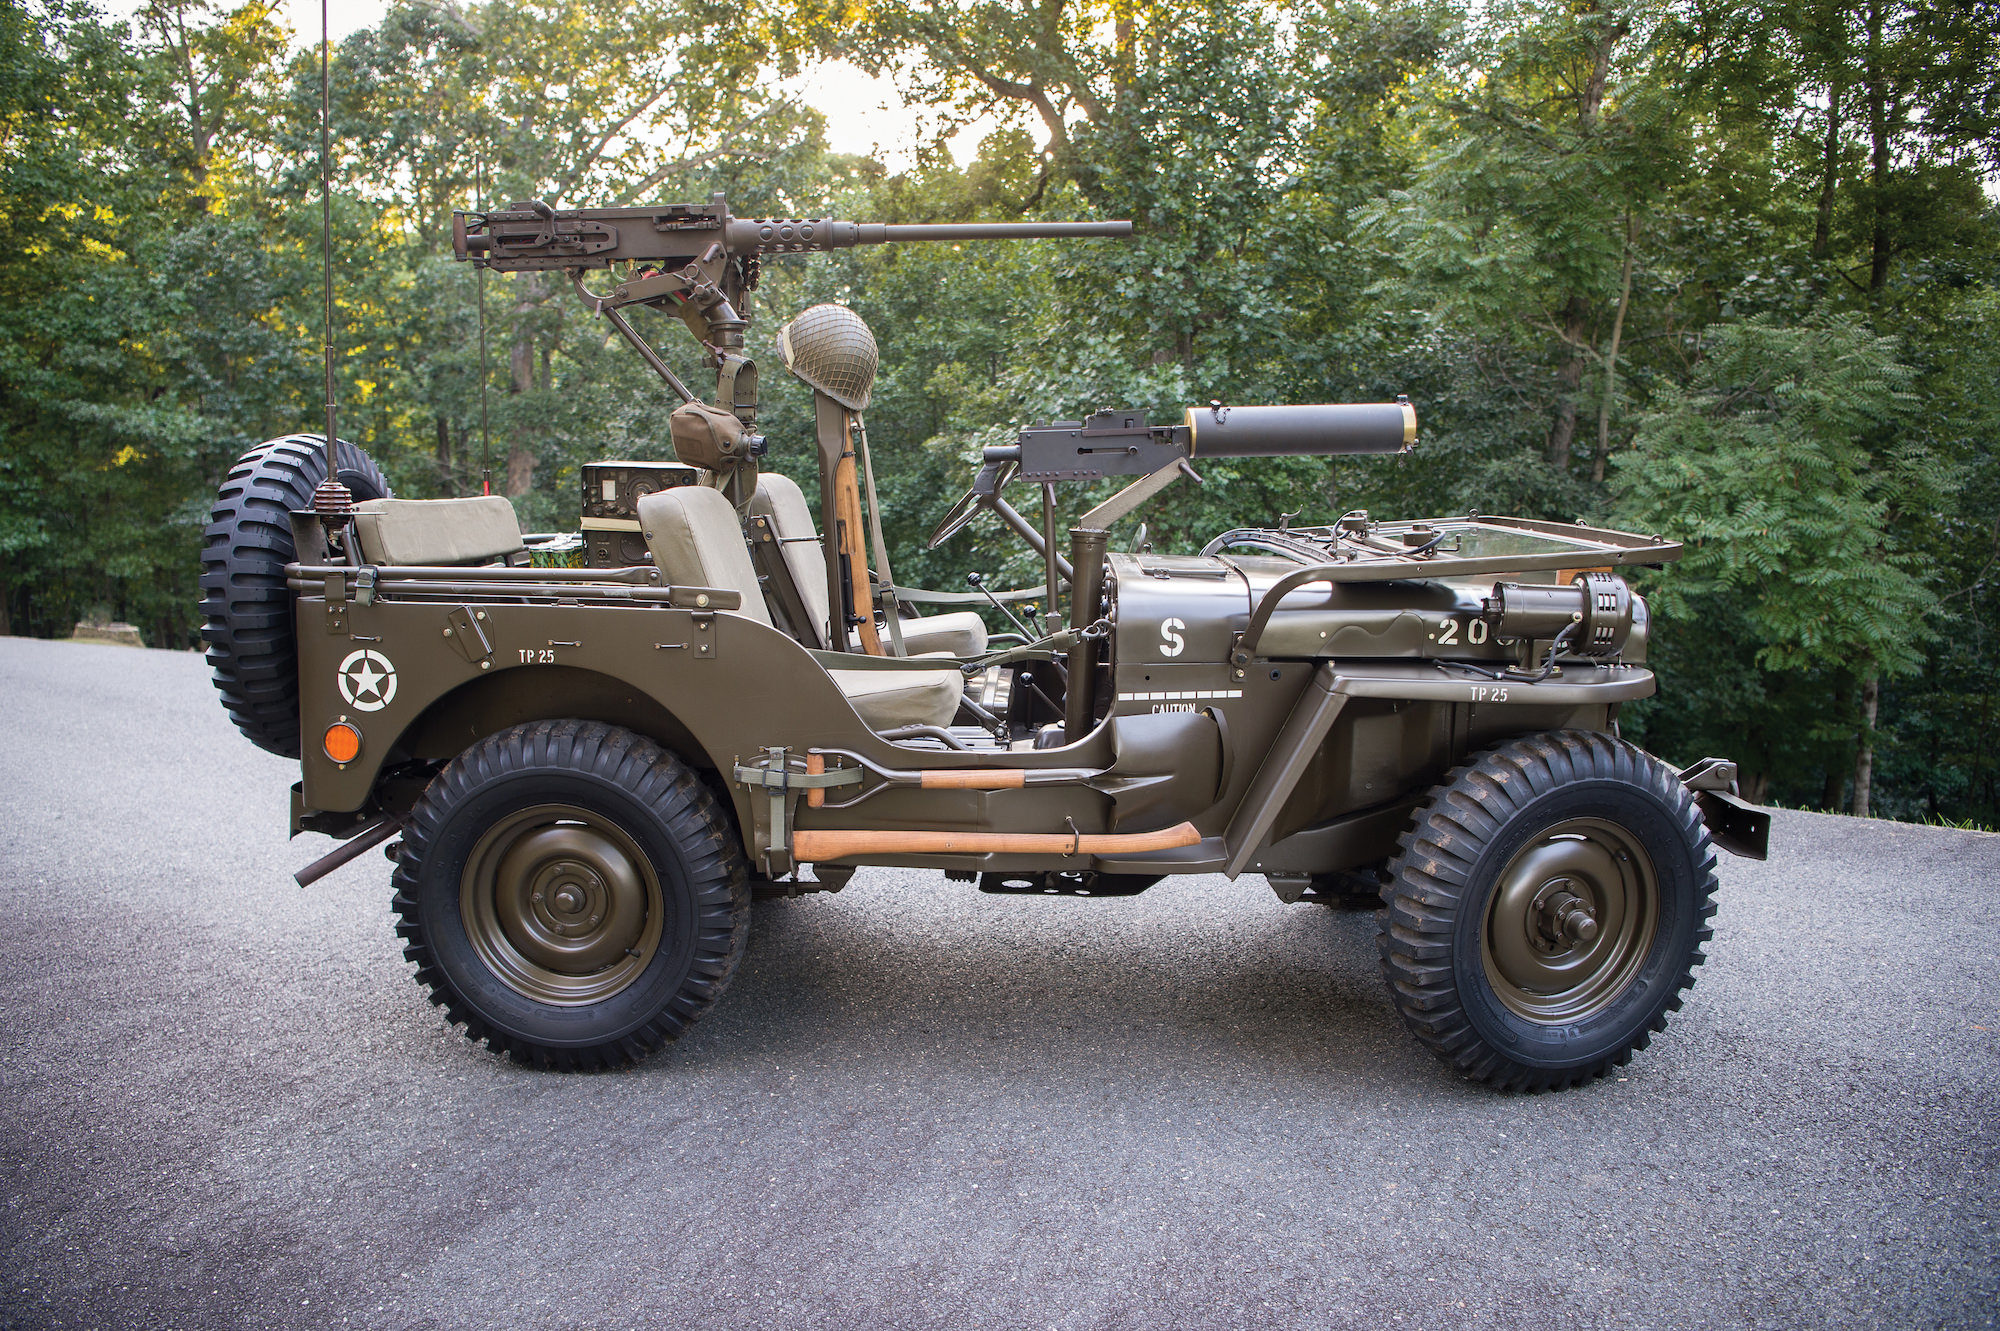 Willys jeep photo - 8